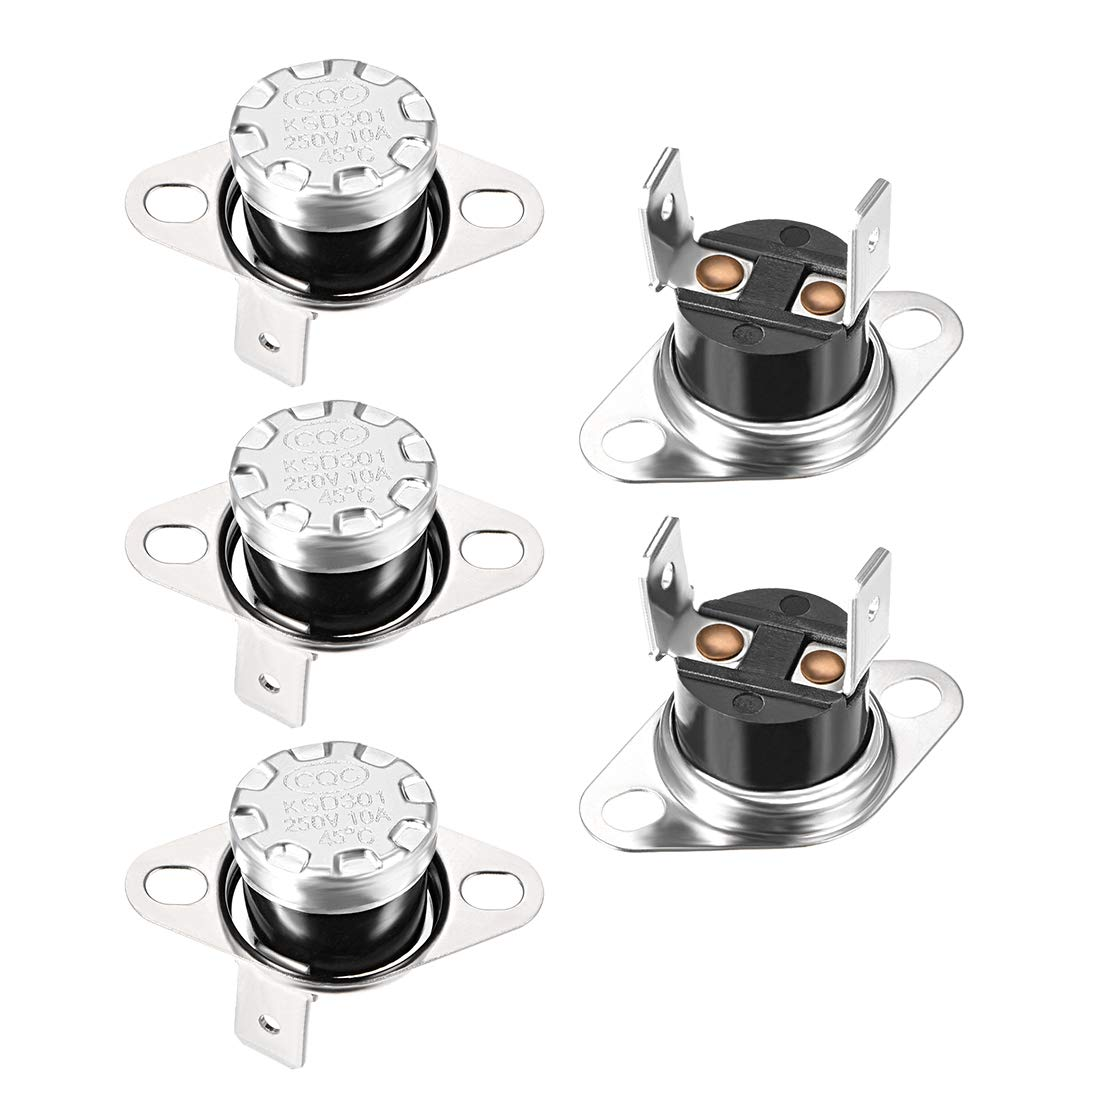 Adjust Snap Disc Limit Control Switch Microwave Thermostat Thermal Switch 45/°C 10A Normally Closed N.C 5pcs uxcell KSD301 Thermostat